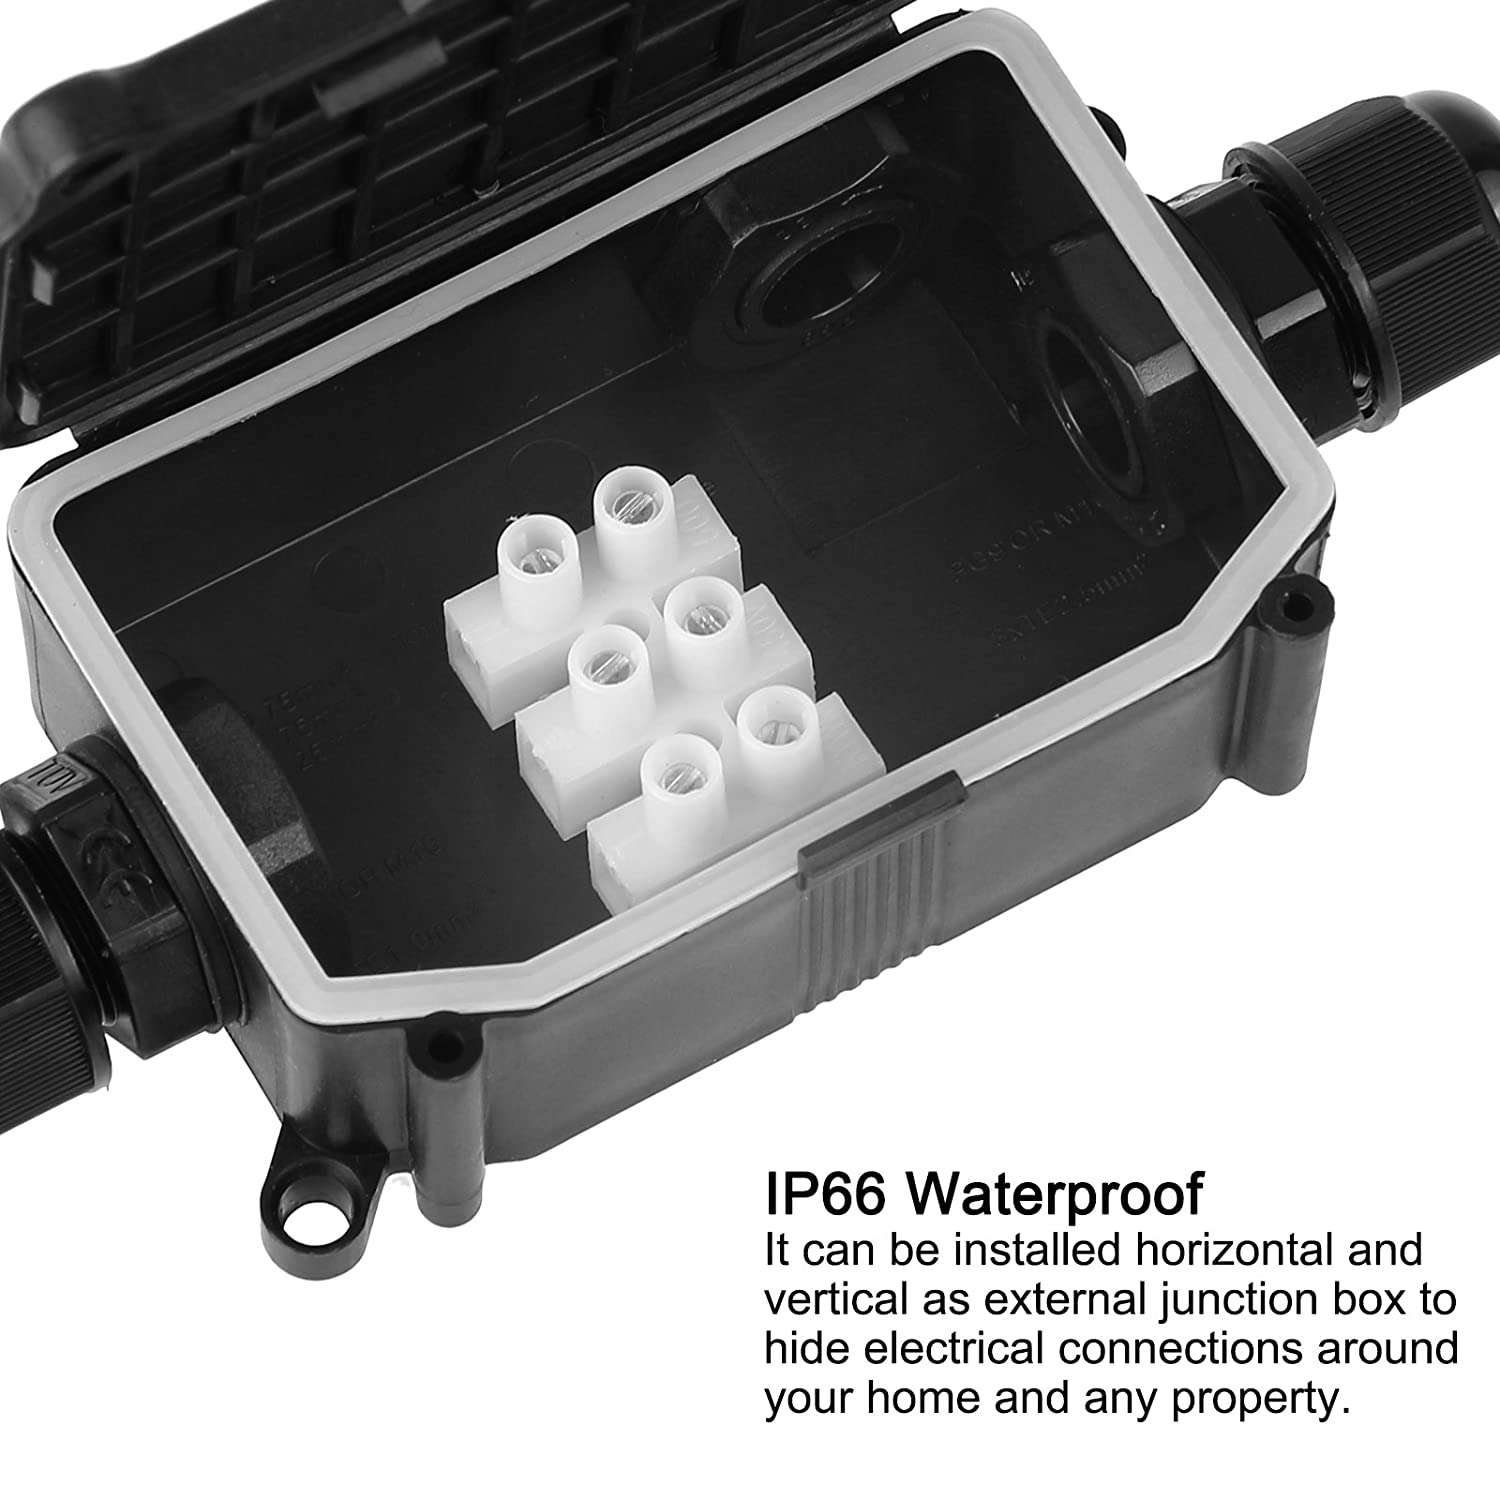 ONEVER External Junction Box | 3 Cable PG9 Underground Junction Box | IP66  Waterproof Plastic Protection Connector | Black     Amazon.com